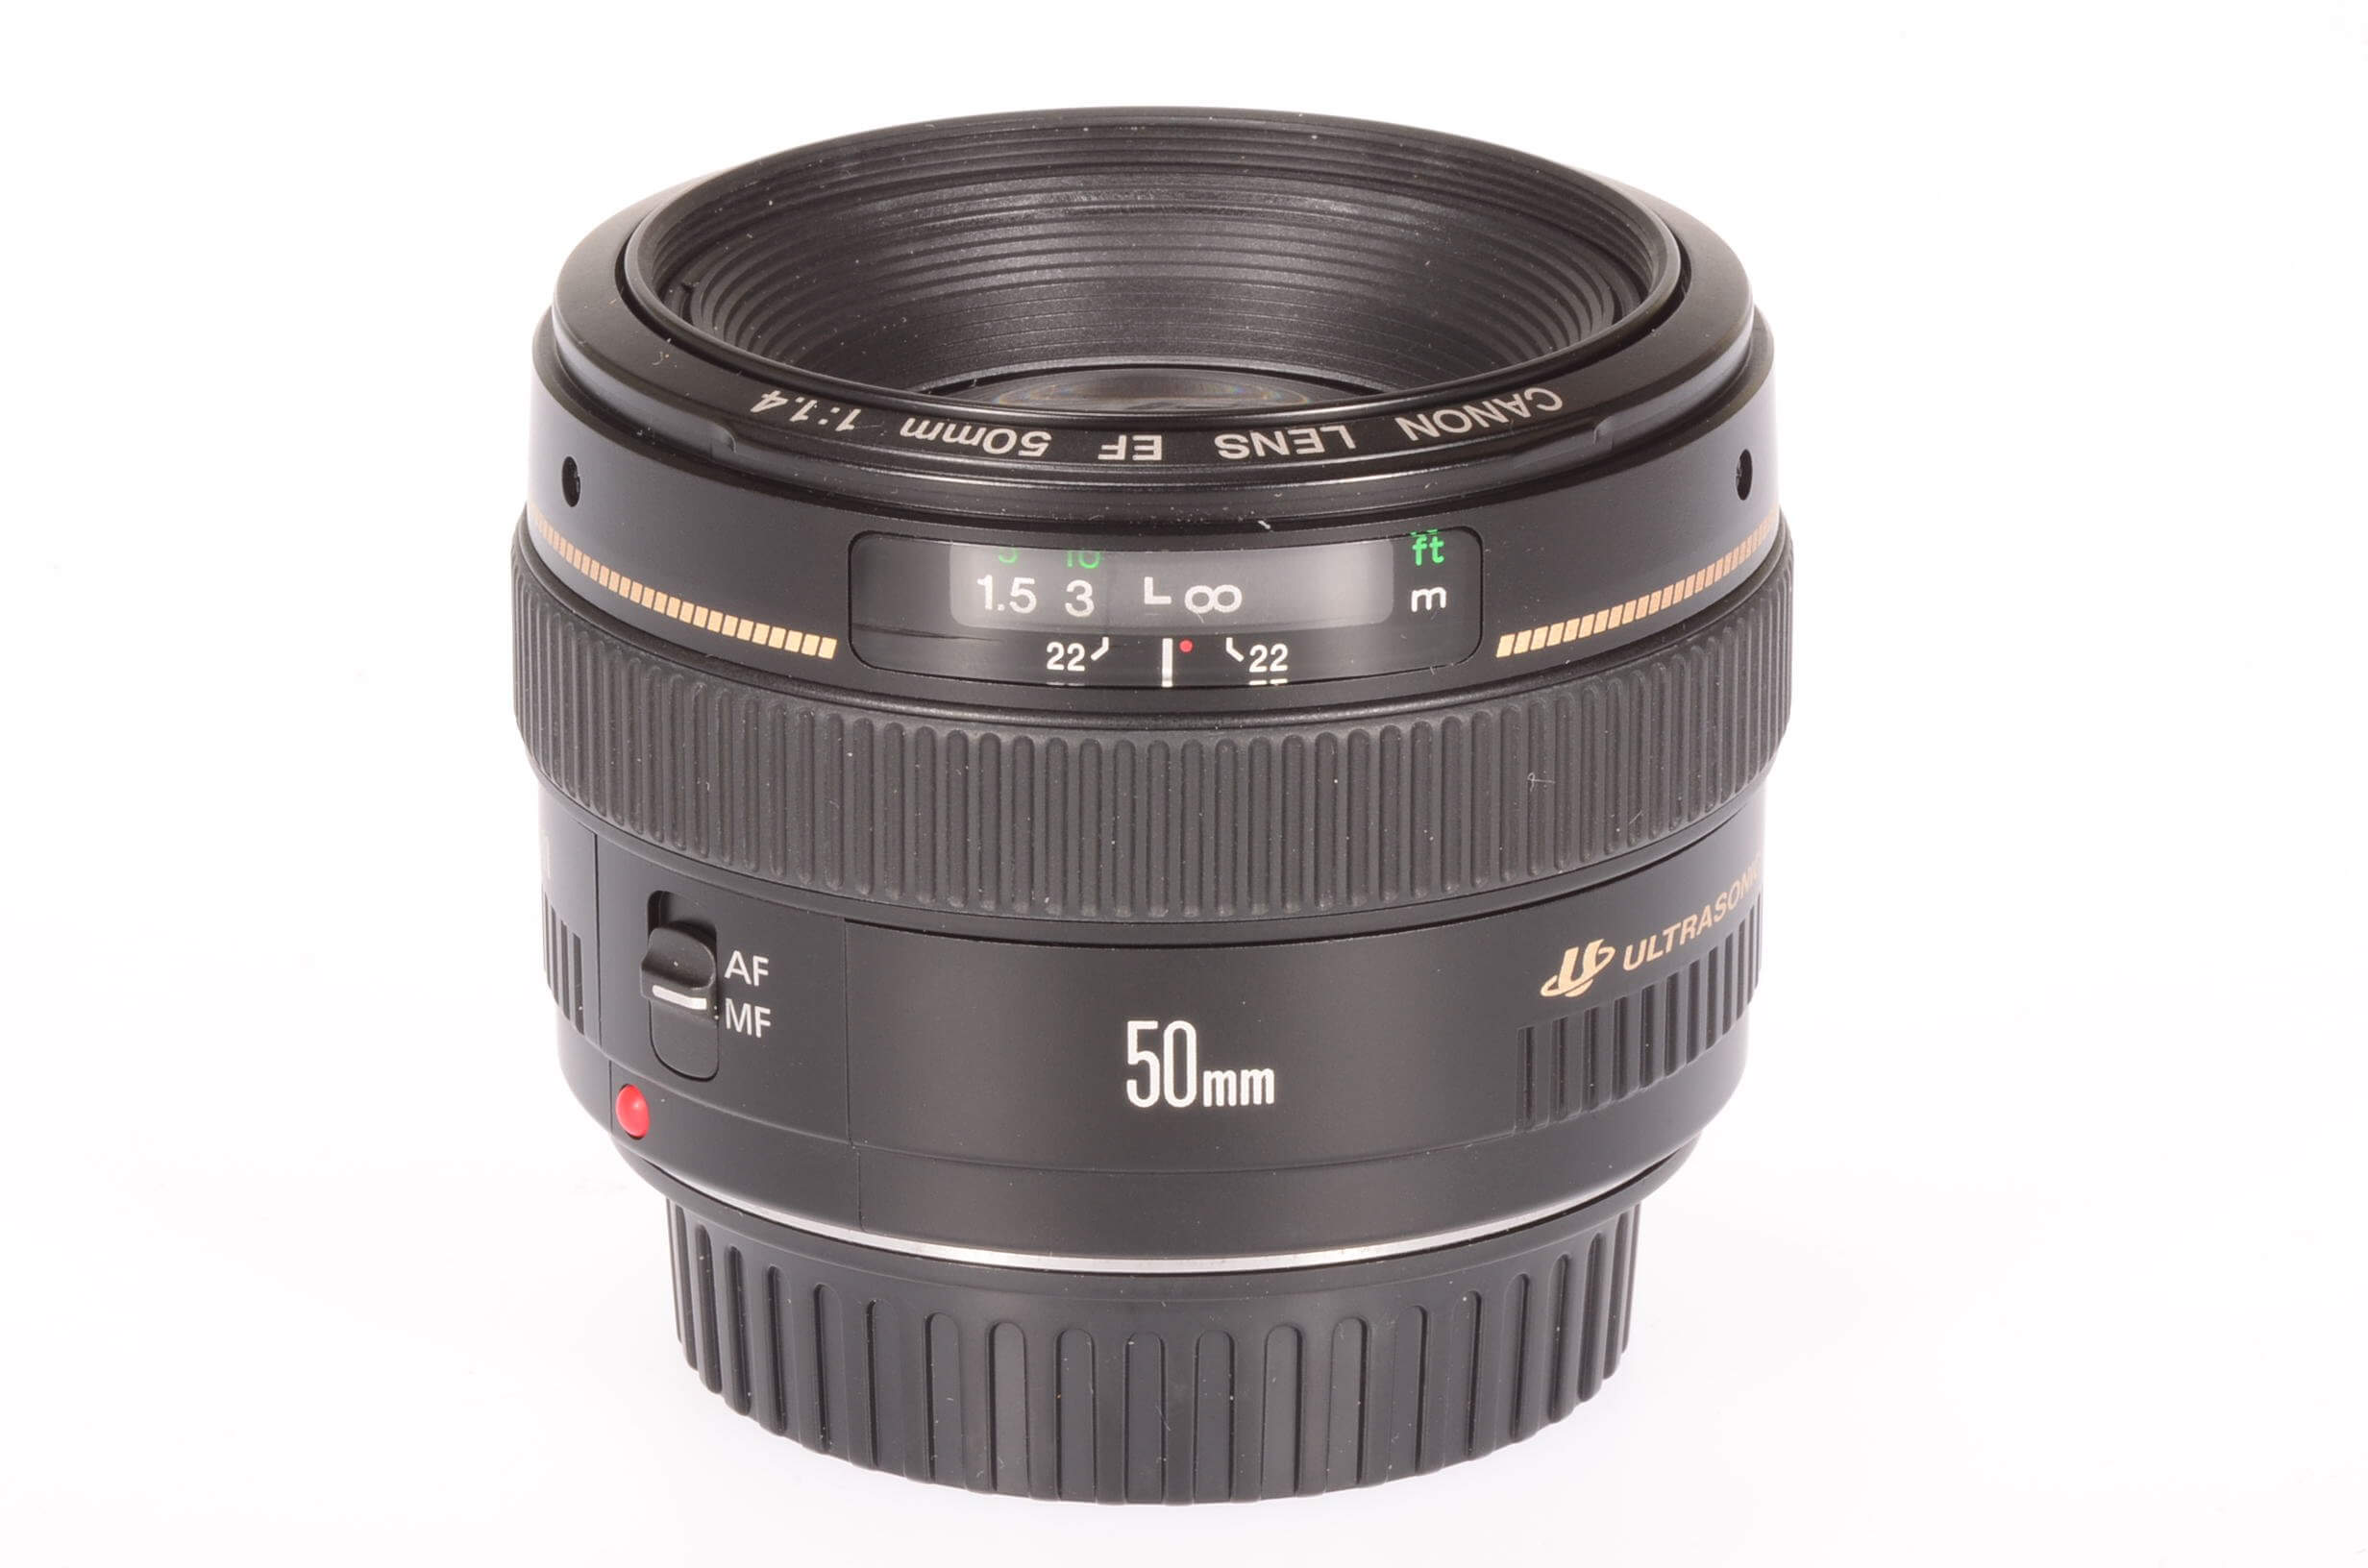 Canon 50mm f1.4 USM lens, mint!